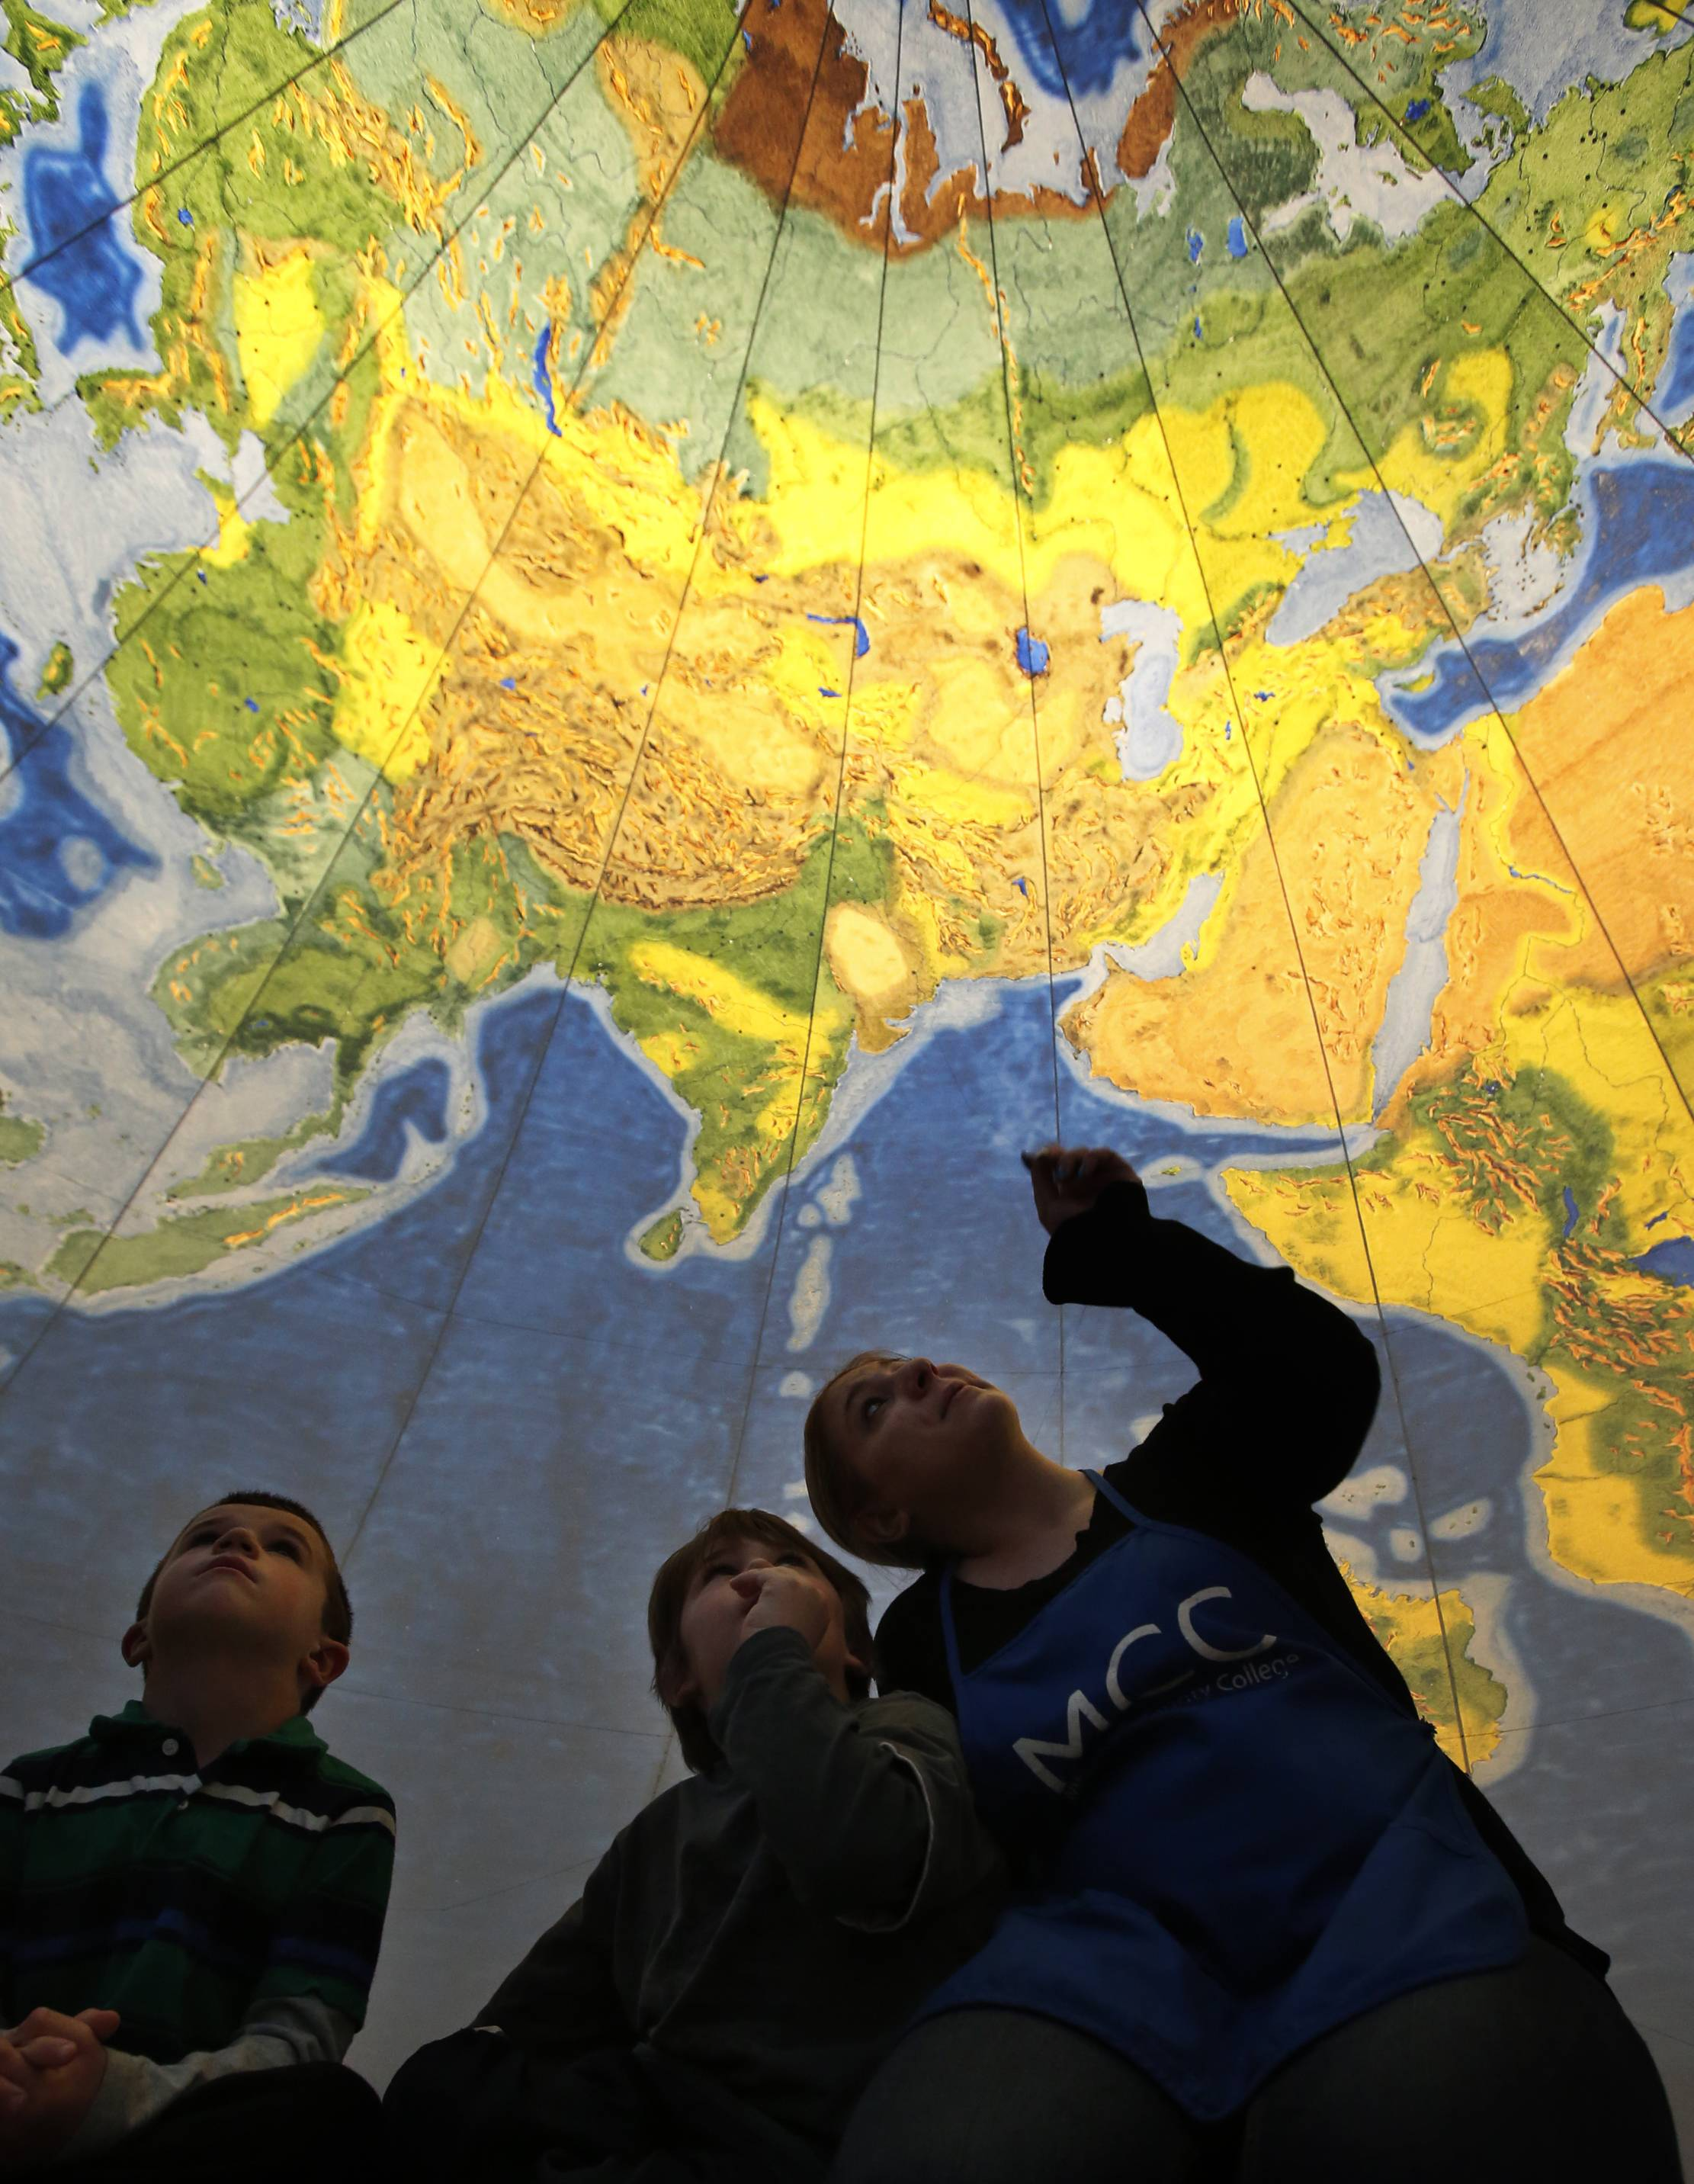 McHenry County College Children's Learning Center students Joshua Dalton, left, and Jaxton Michaels, gaze up from the inside of the inflatable Geosphere Monday on the Crystal Lake campus. Pointing out some of the Earth's features to Jaxton is student teacher Jill Shadwell. Joshua and Jaxton, both 4, are from Crystal Lake. Director Steve Jansen, of The Geographic Society of Chicago, taught the kids about how much water covers the earth versus land, the rainforests, and the relative size of mountains compared with the depths of the oceans.